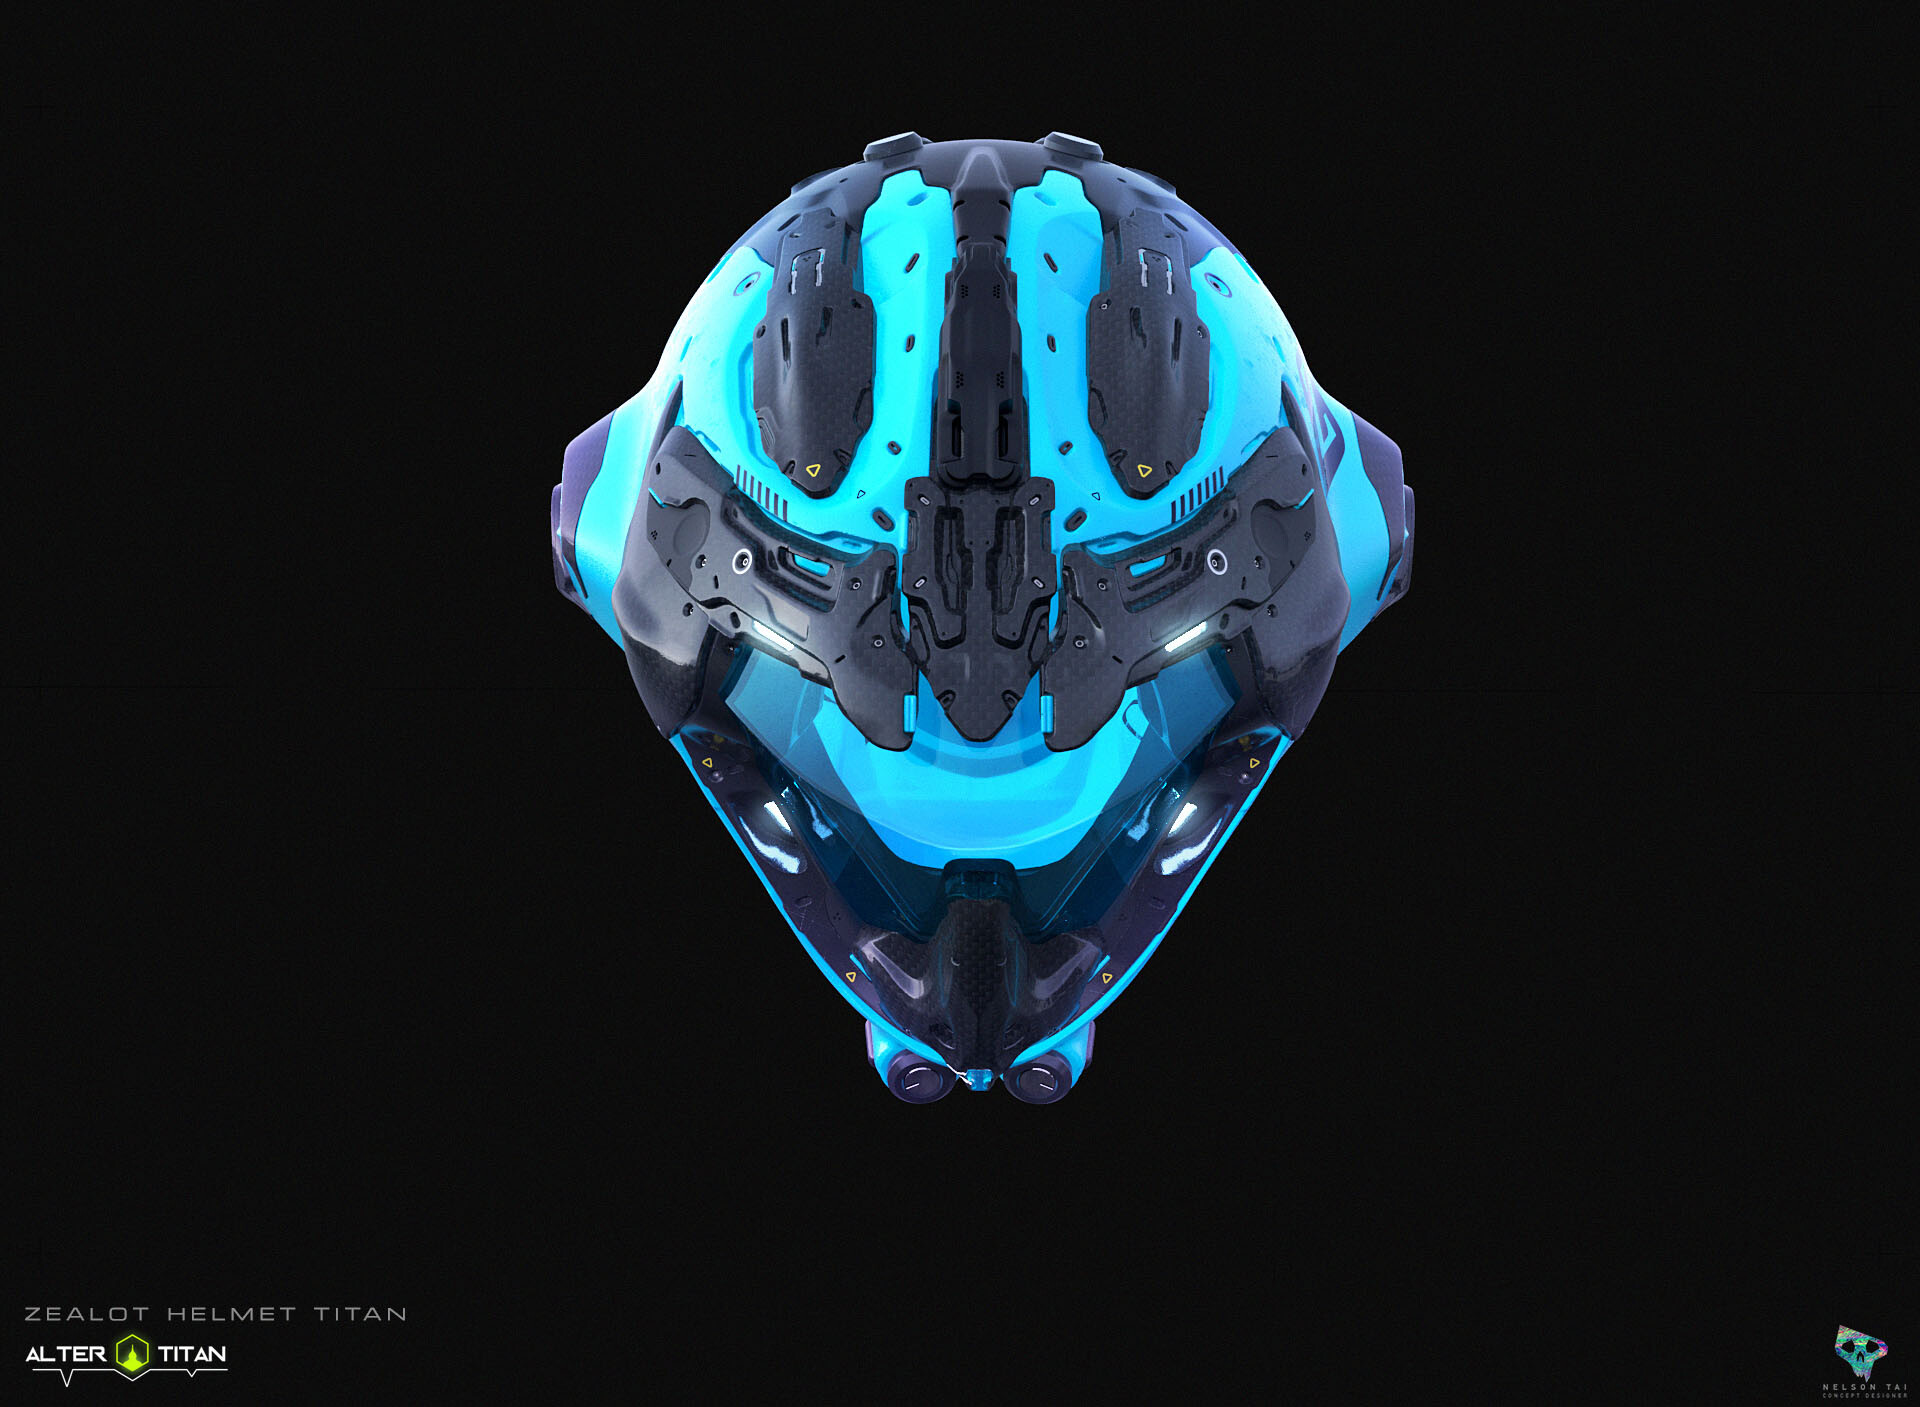 The sexy front view of the Zealolt Helmet